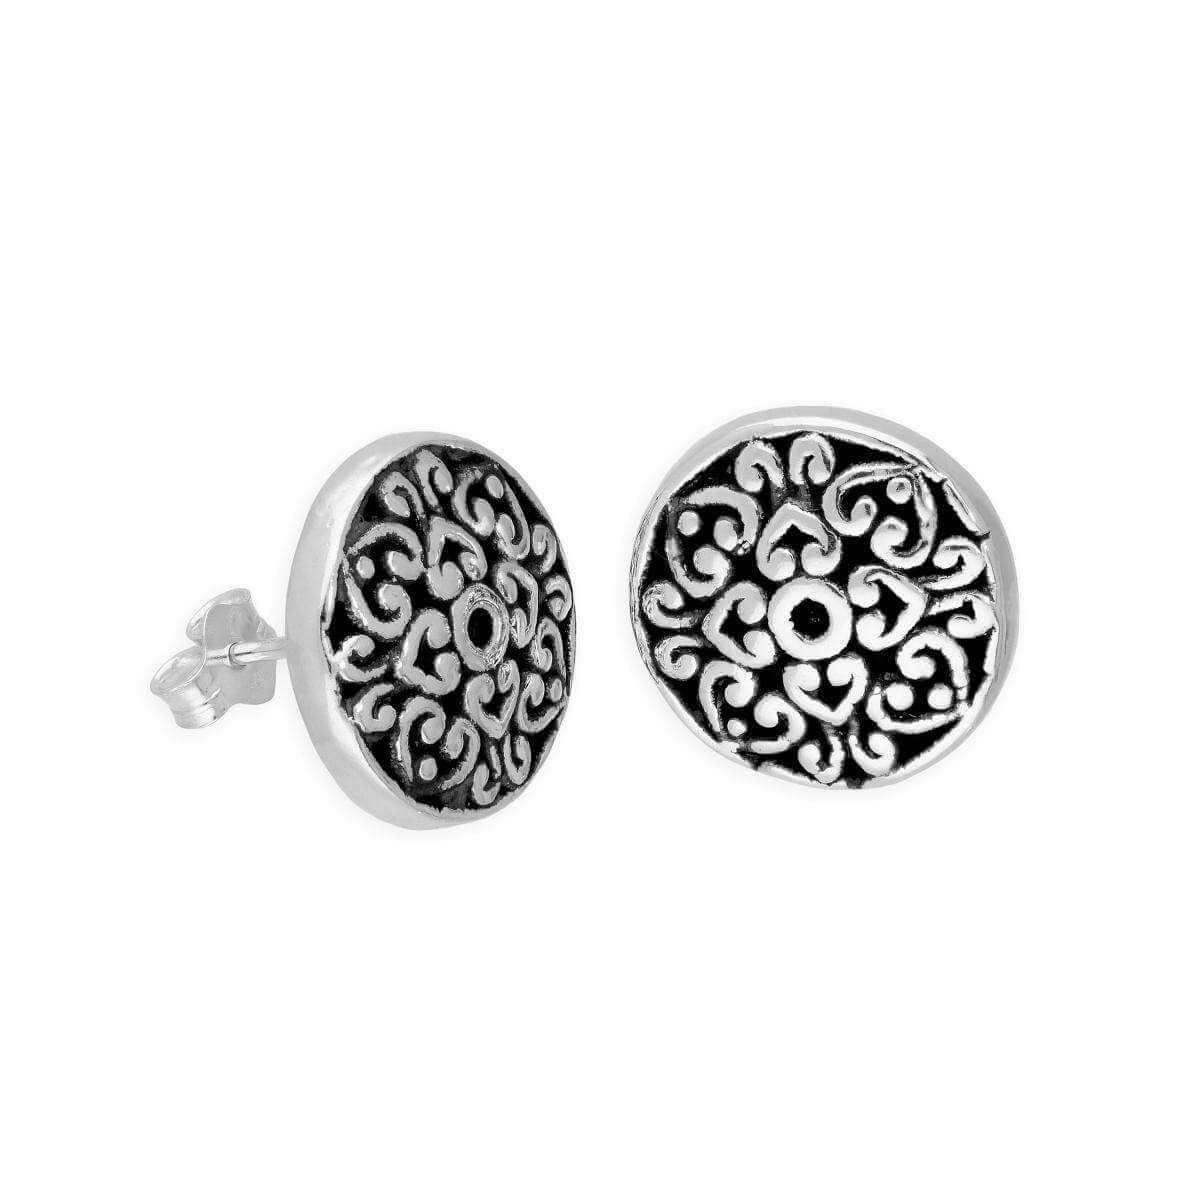 Large Sterling Silver Floral Stud Earrings